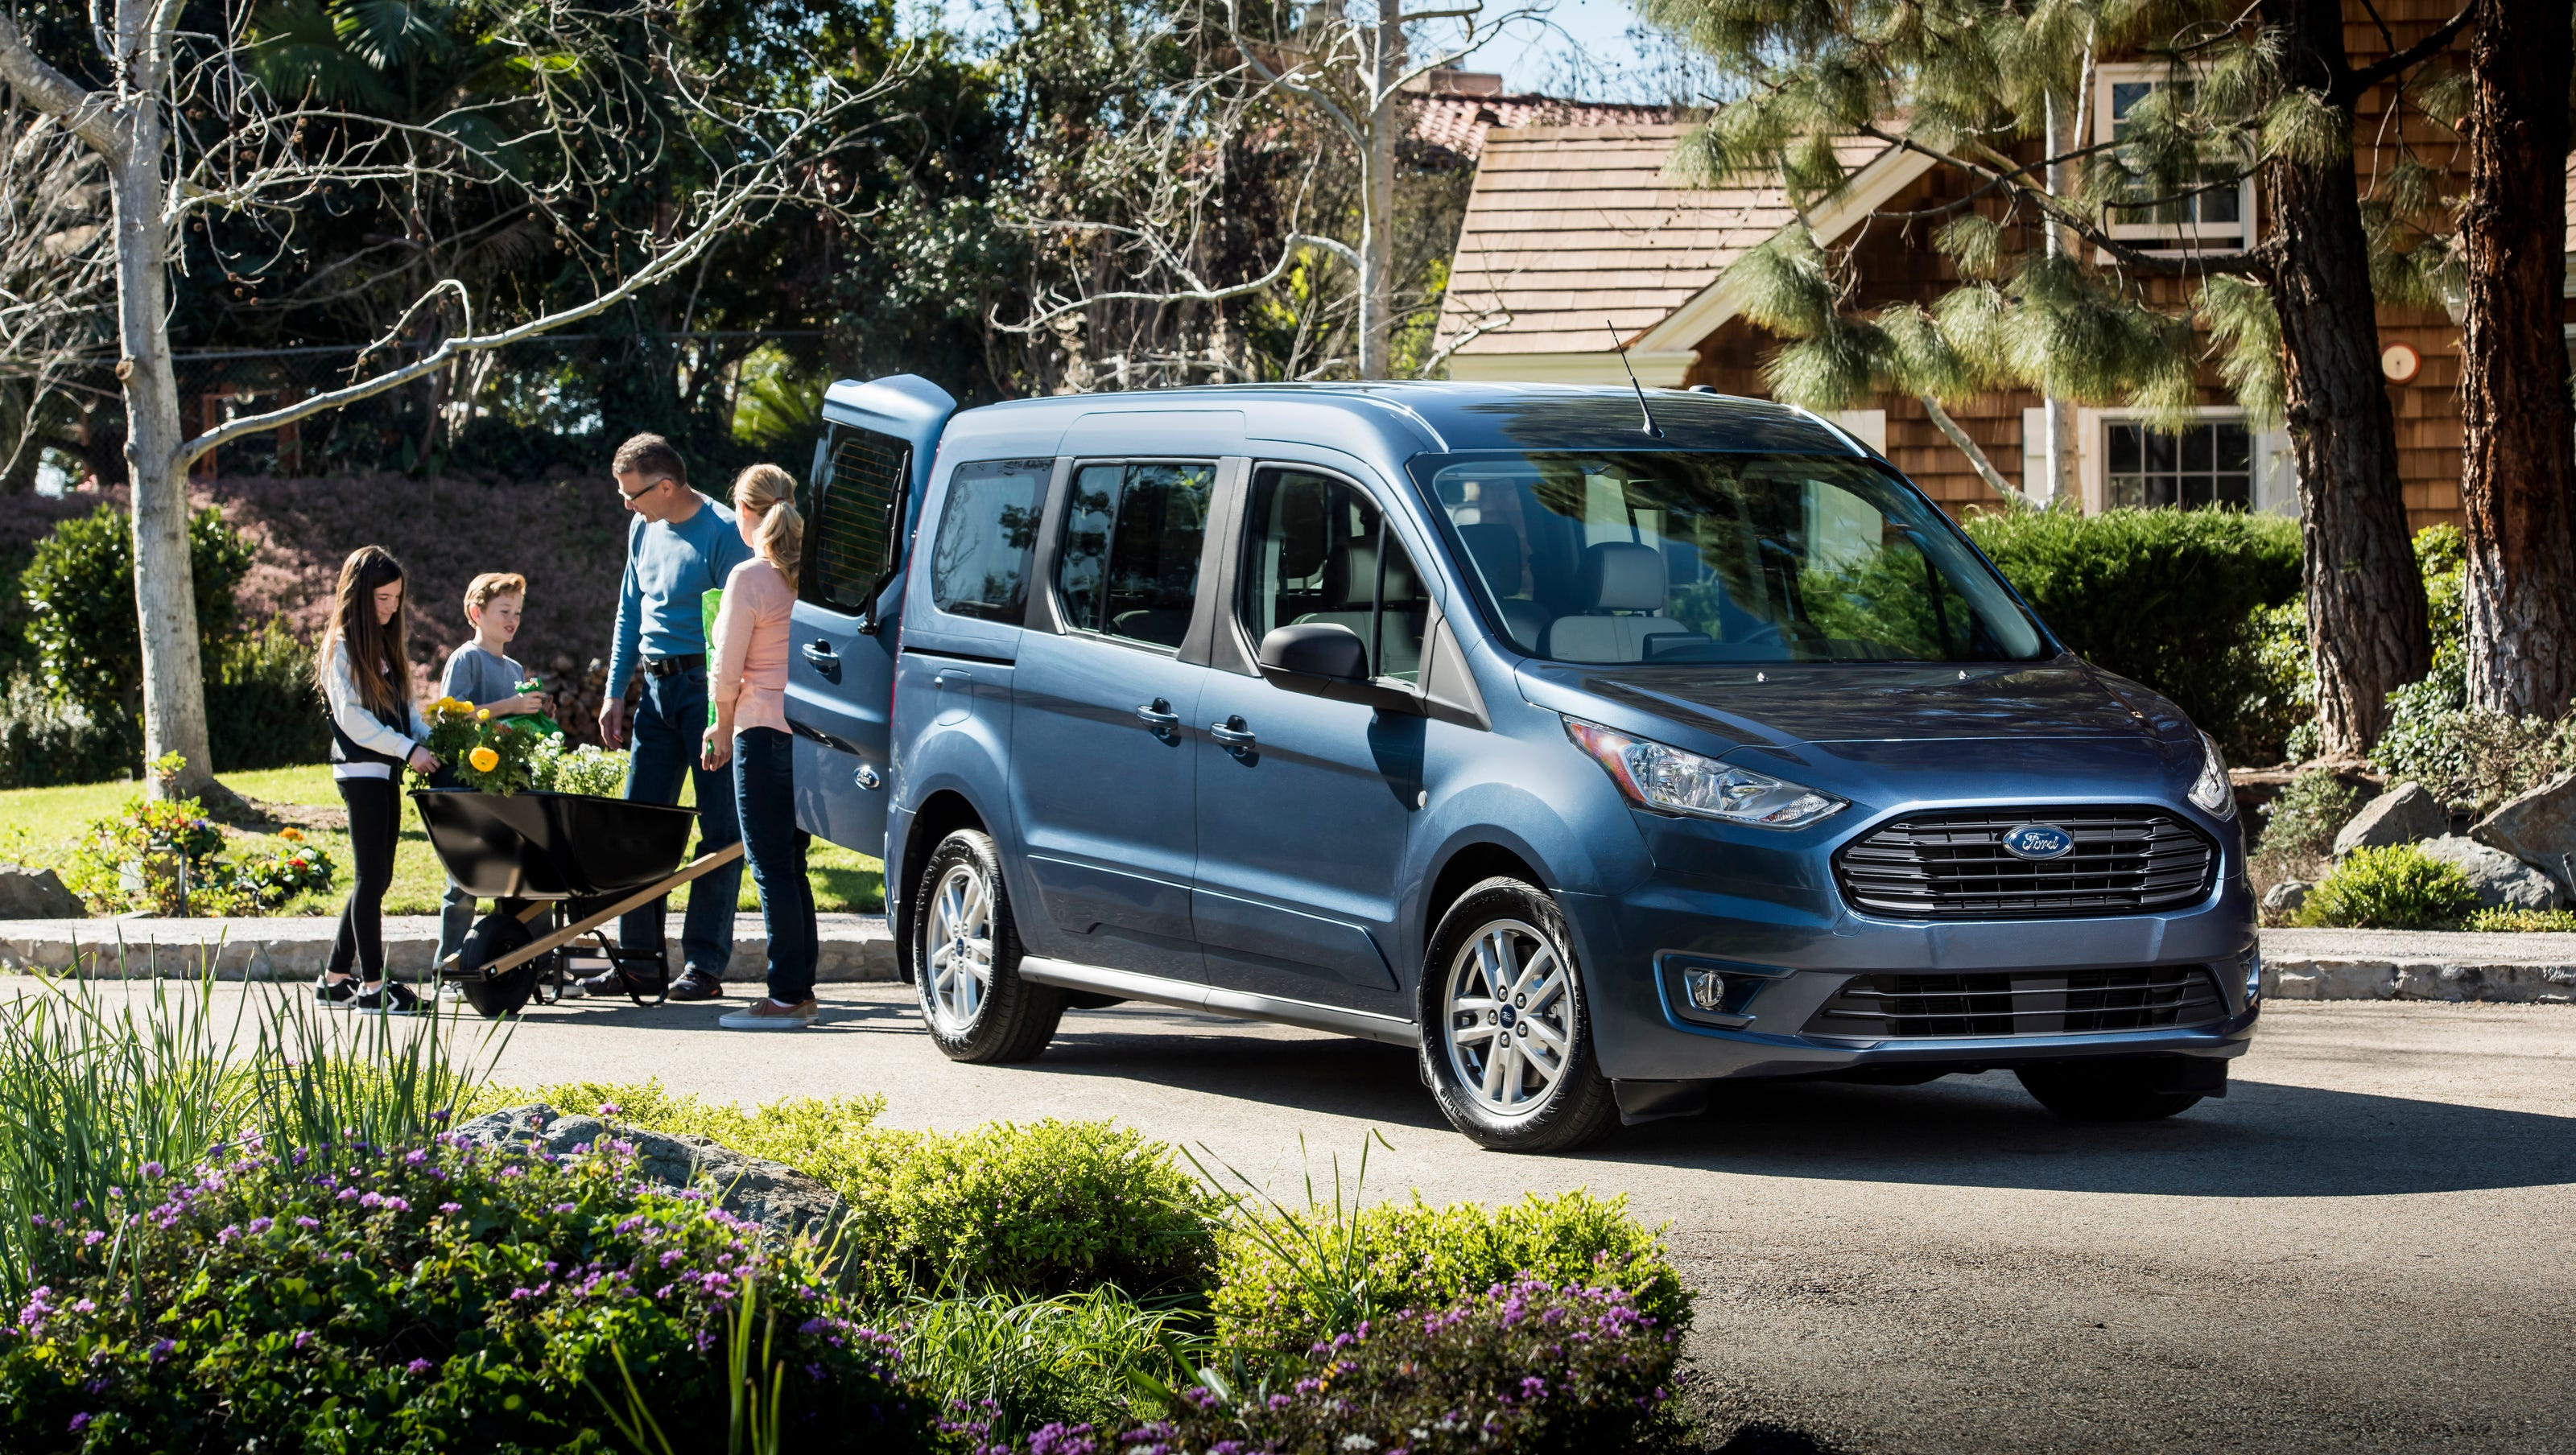 Ford shows new transit connect van aims it at boomers